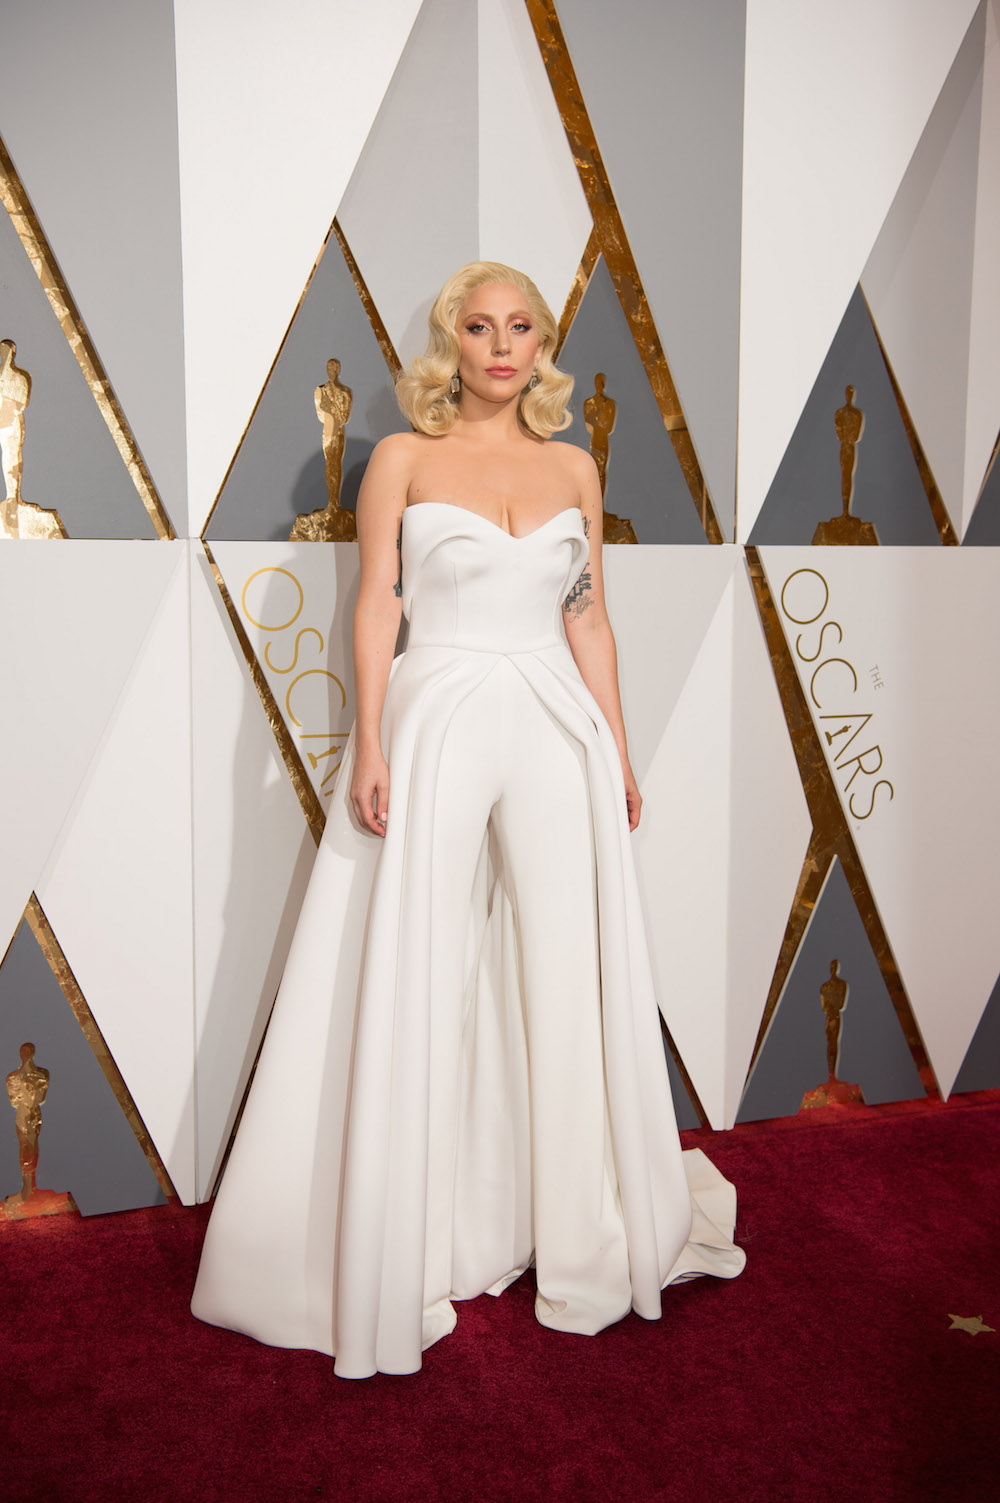 Lady gaga oscars 2016 dress red carpet designer modepilot